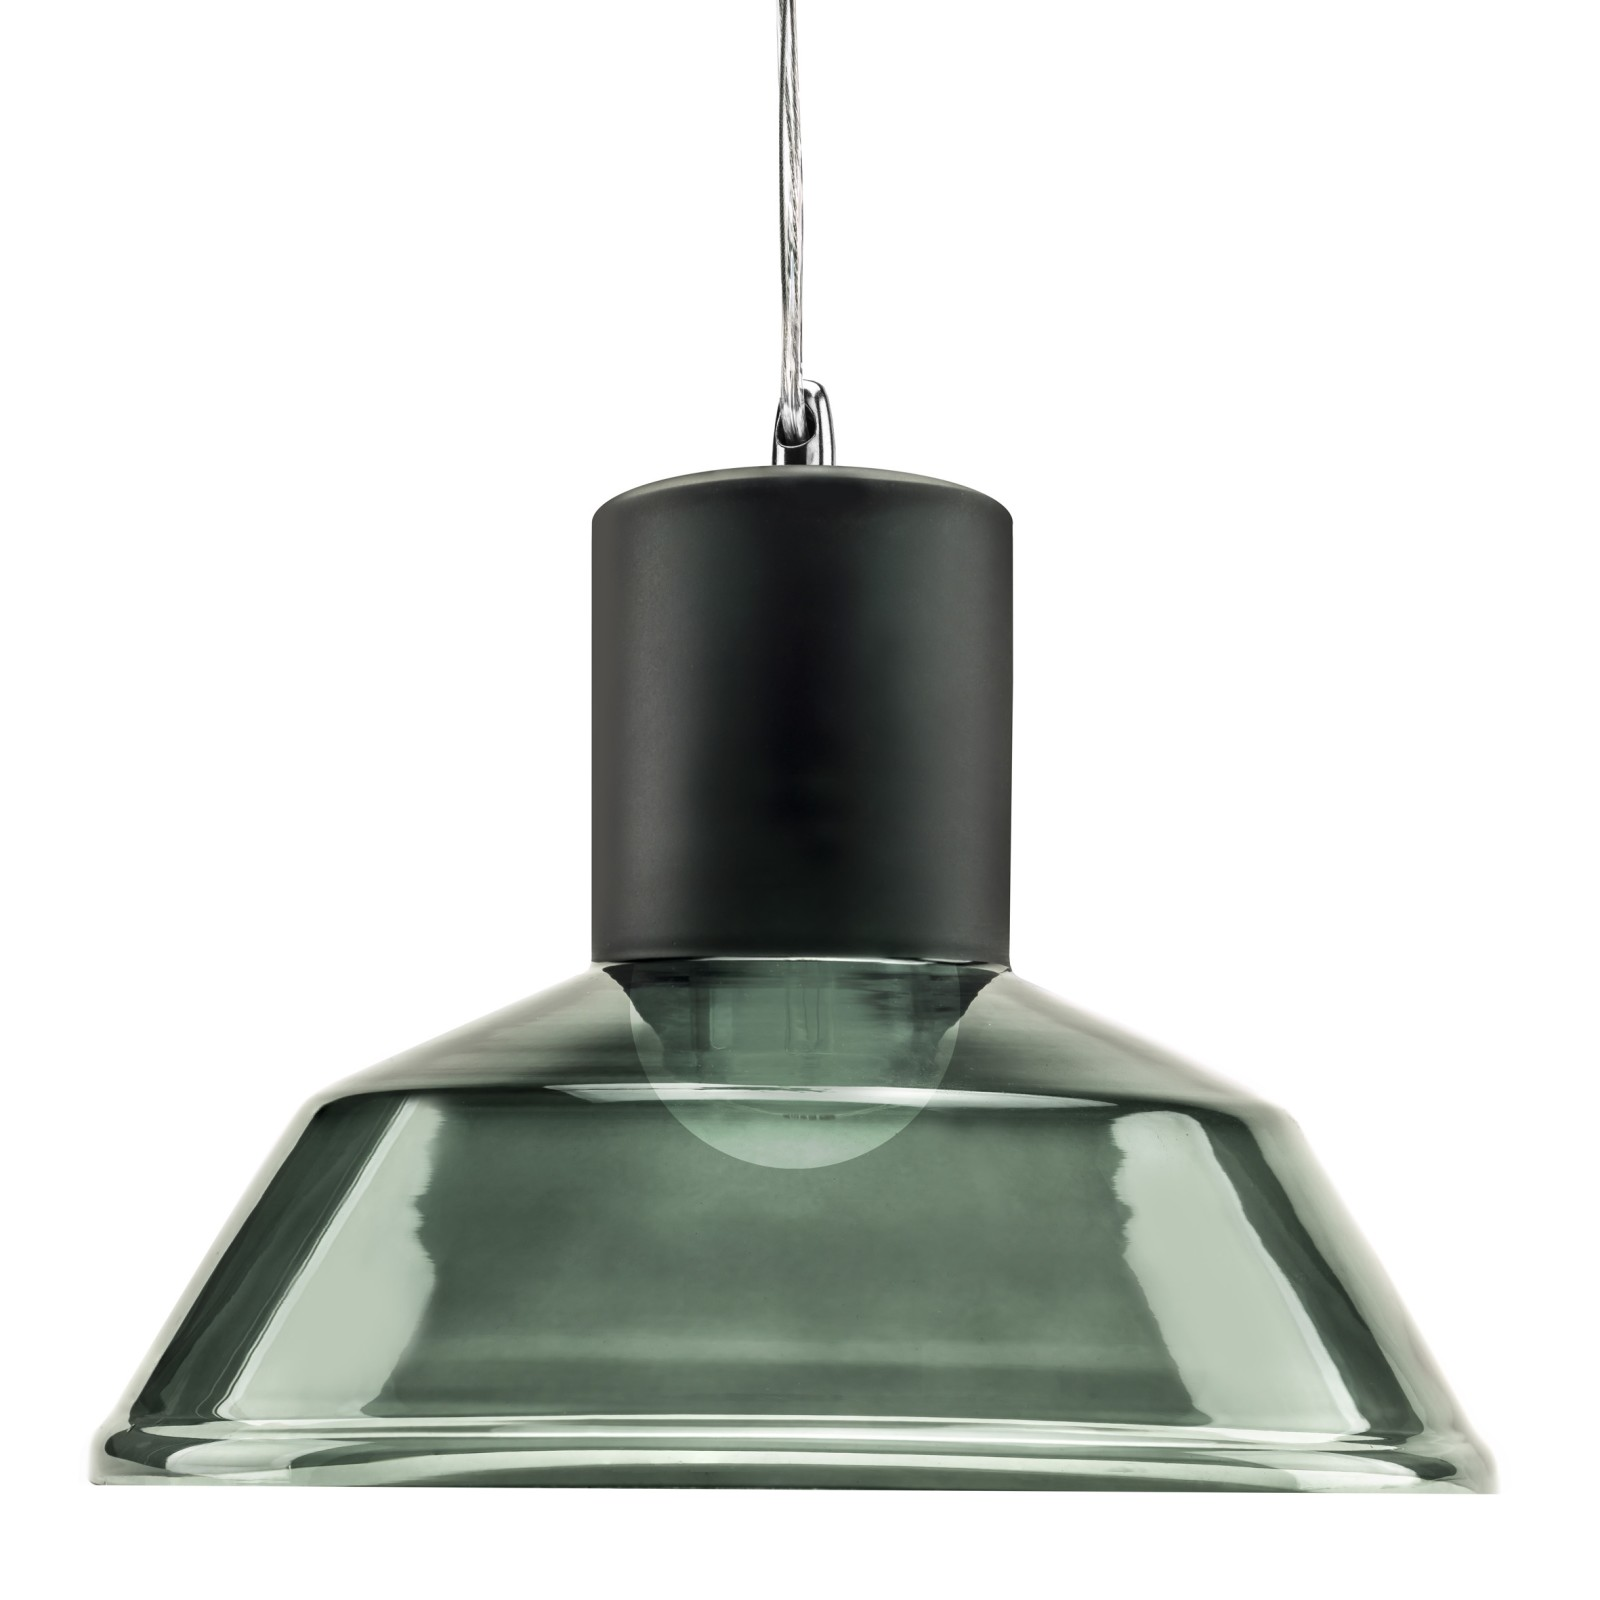 Factory Pendant Lamp Grey Blue Tint Factory Pendant Lamp